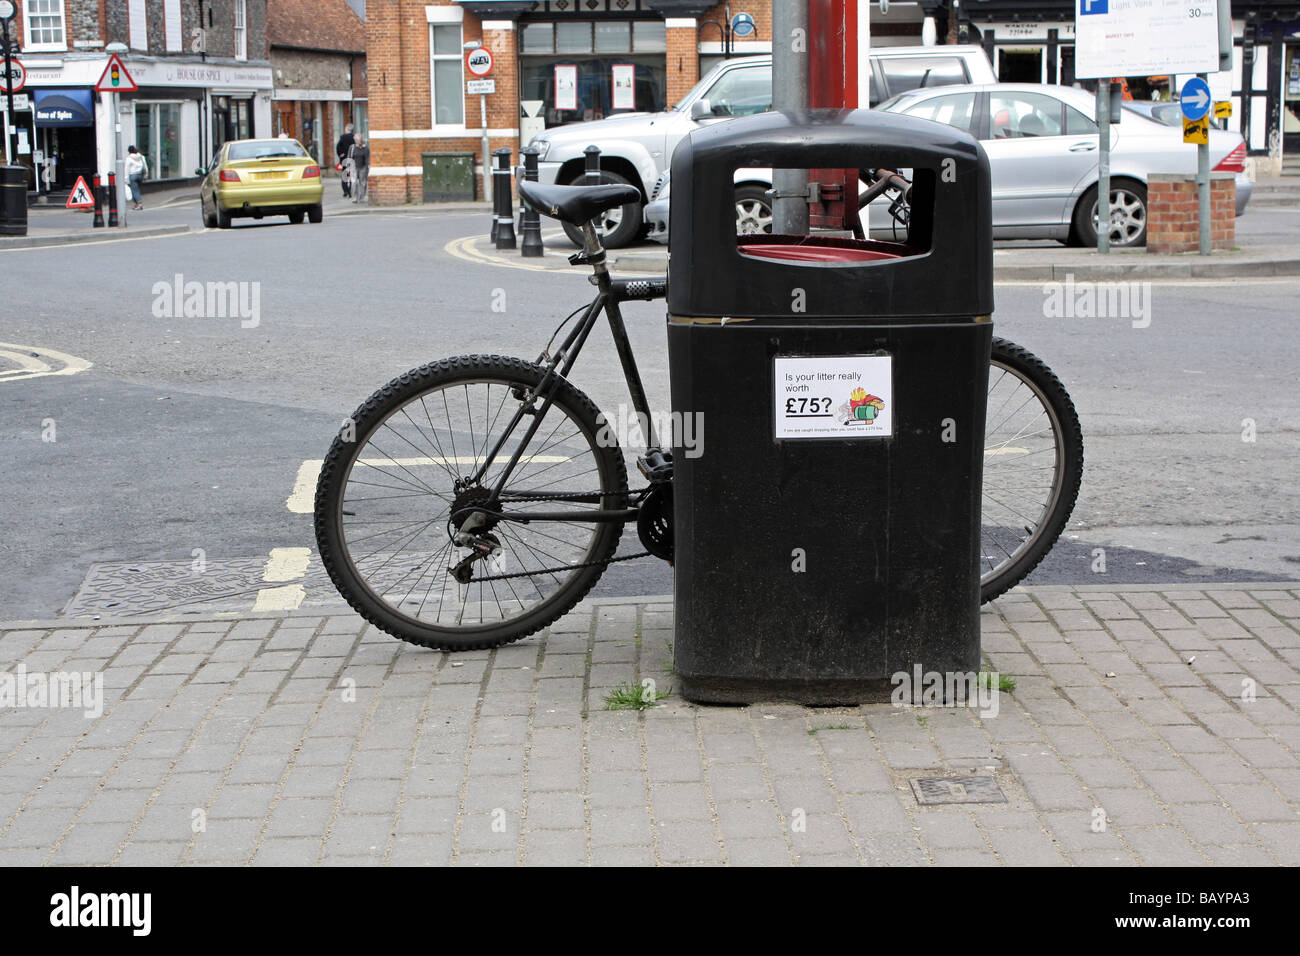 bicycle left next to a litter bin - Stock Image